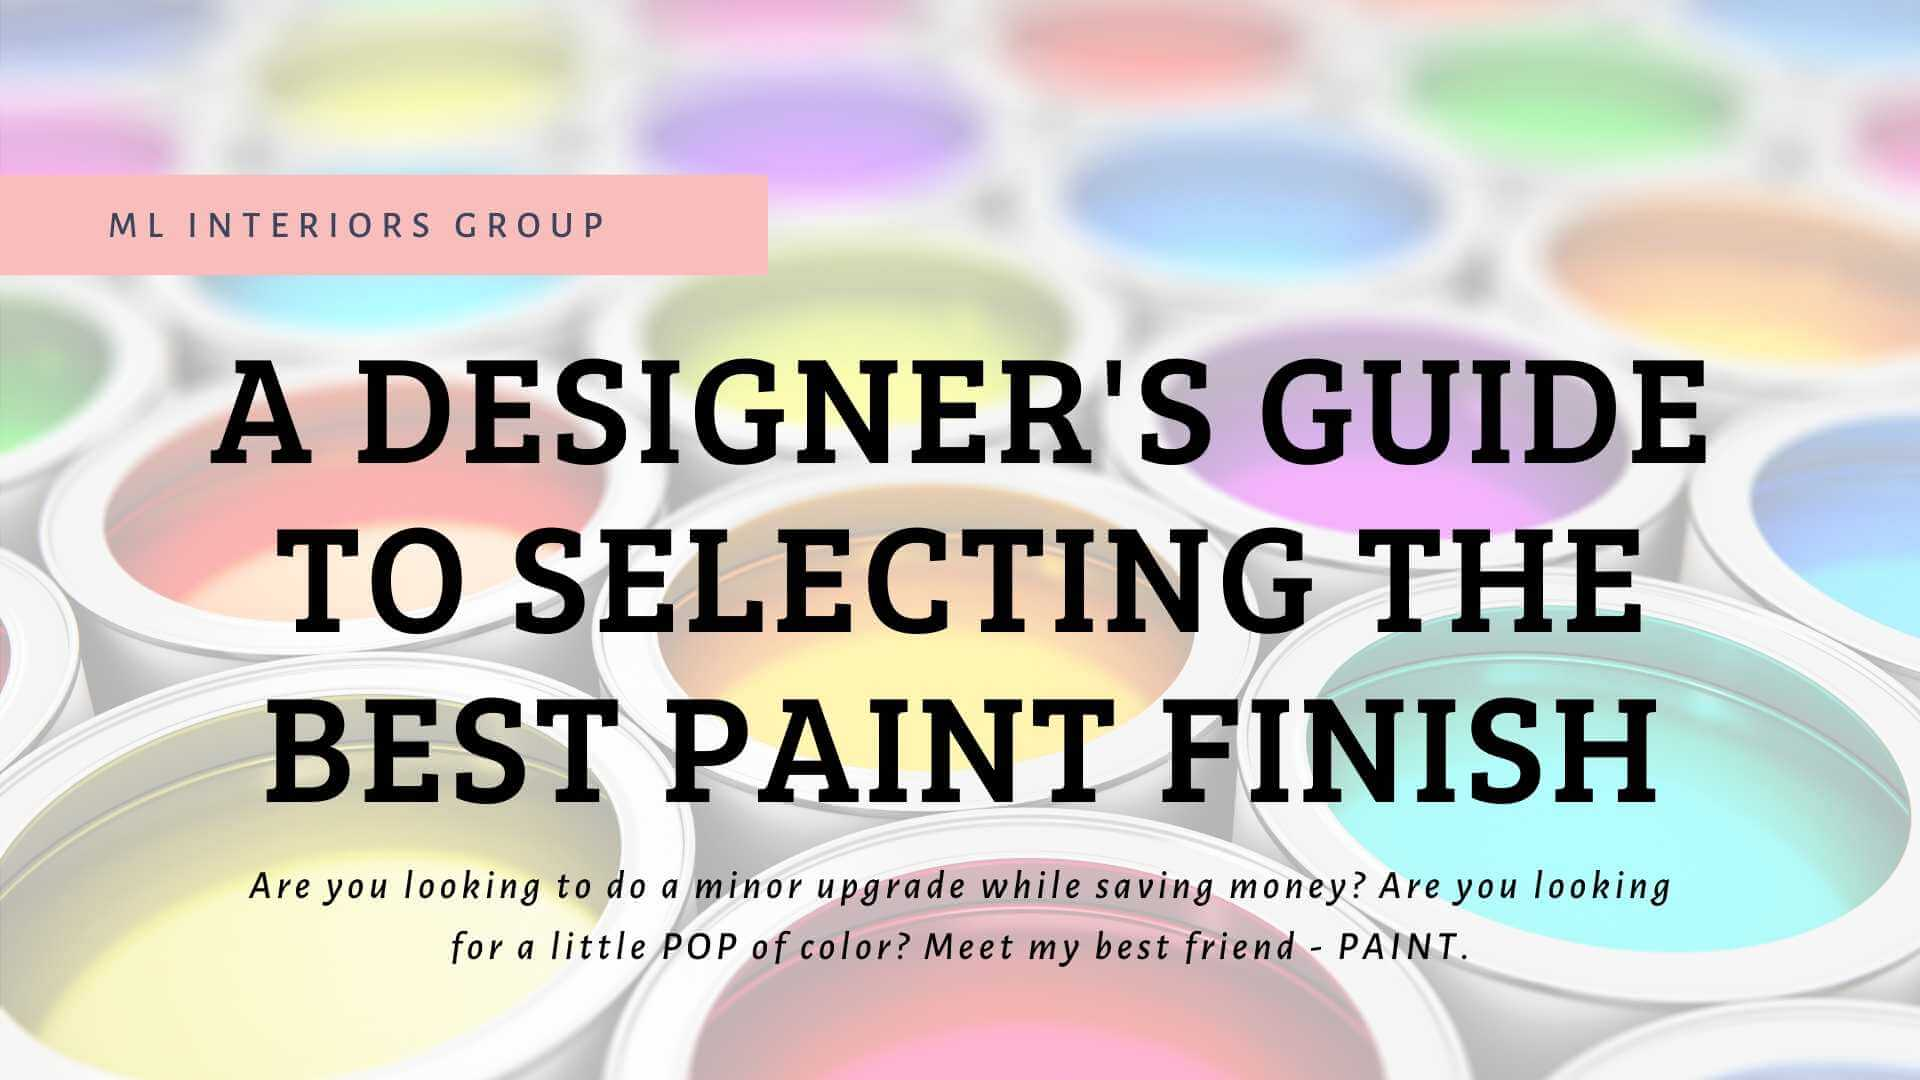 How To Select The Best Paint Finish | A Designer's Guide